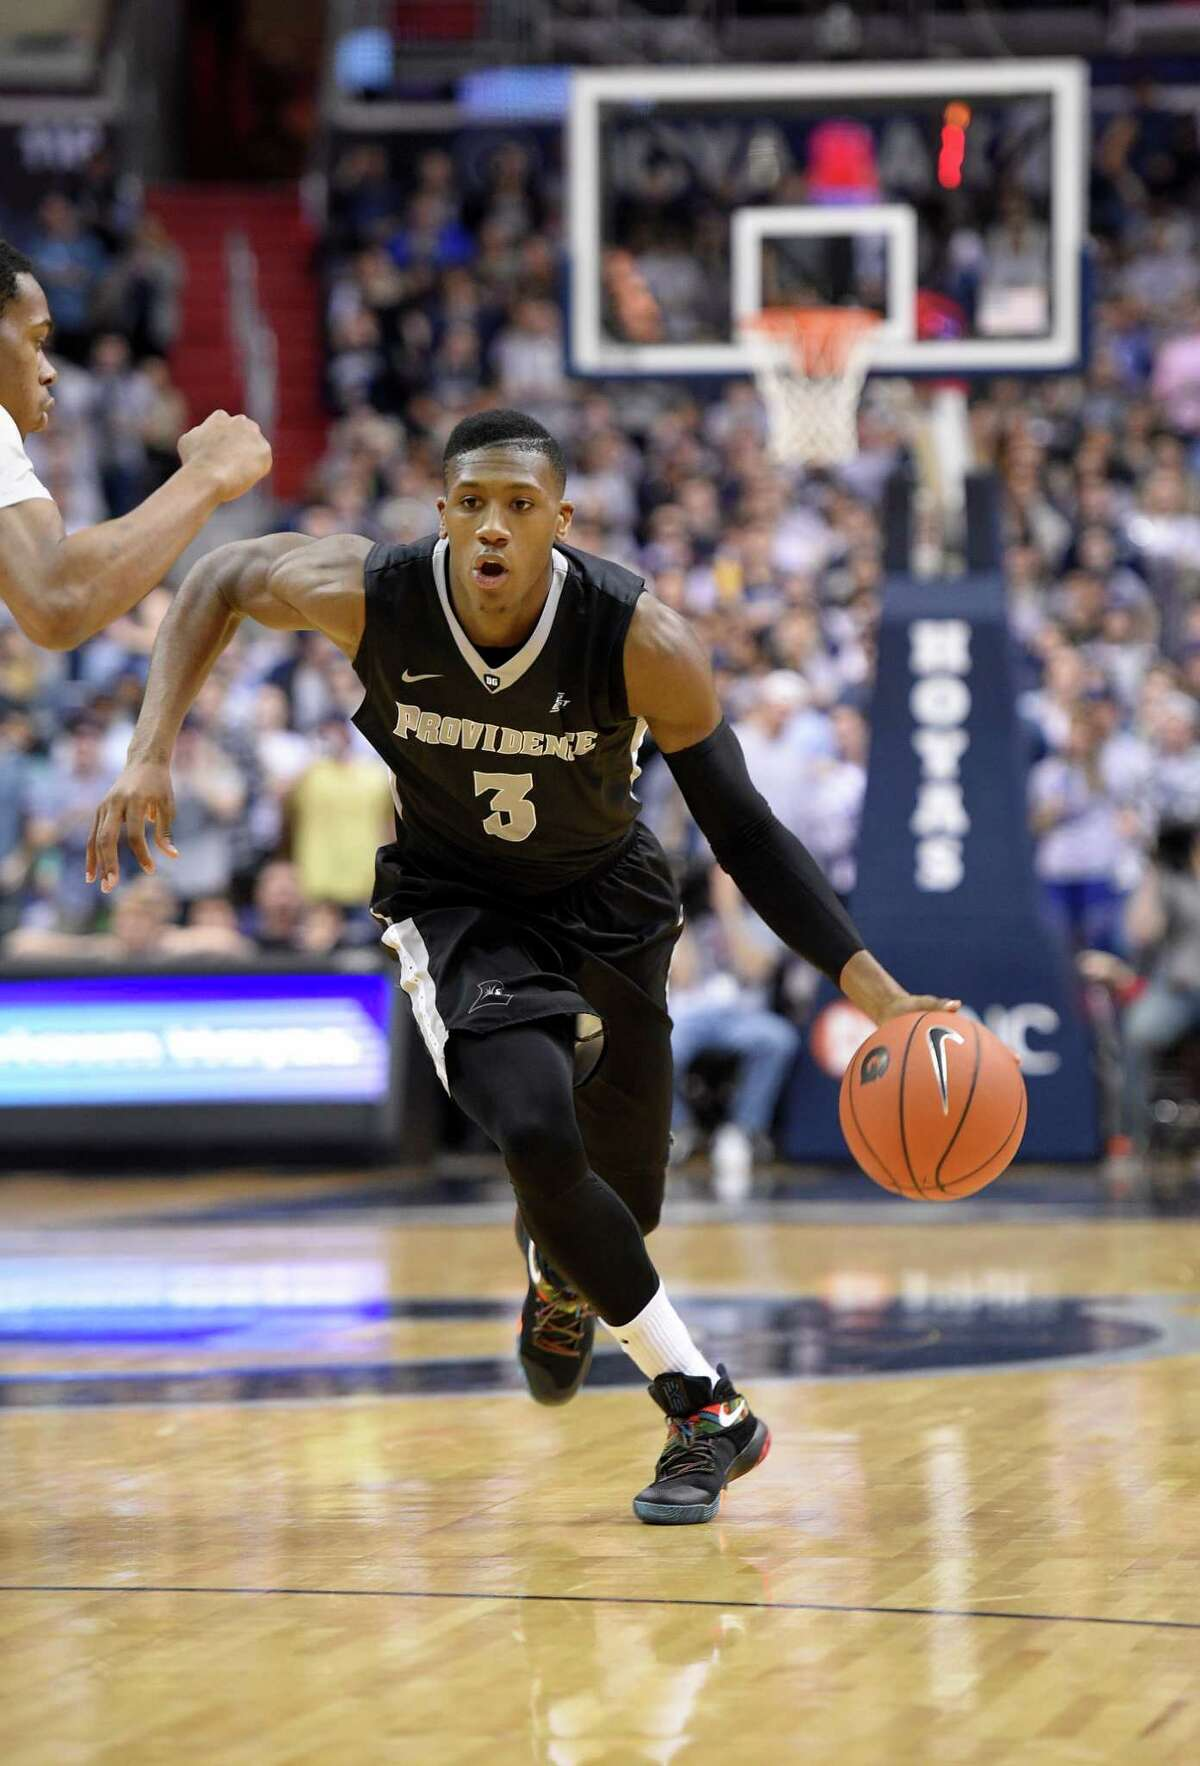 Kris Dunn: Dunn, perhaps the nation's best point guard, is a big reason Providence has climbed into the top 10. He's the only player in the nation to average at least 16 points, seven assists and six rebounds.